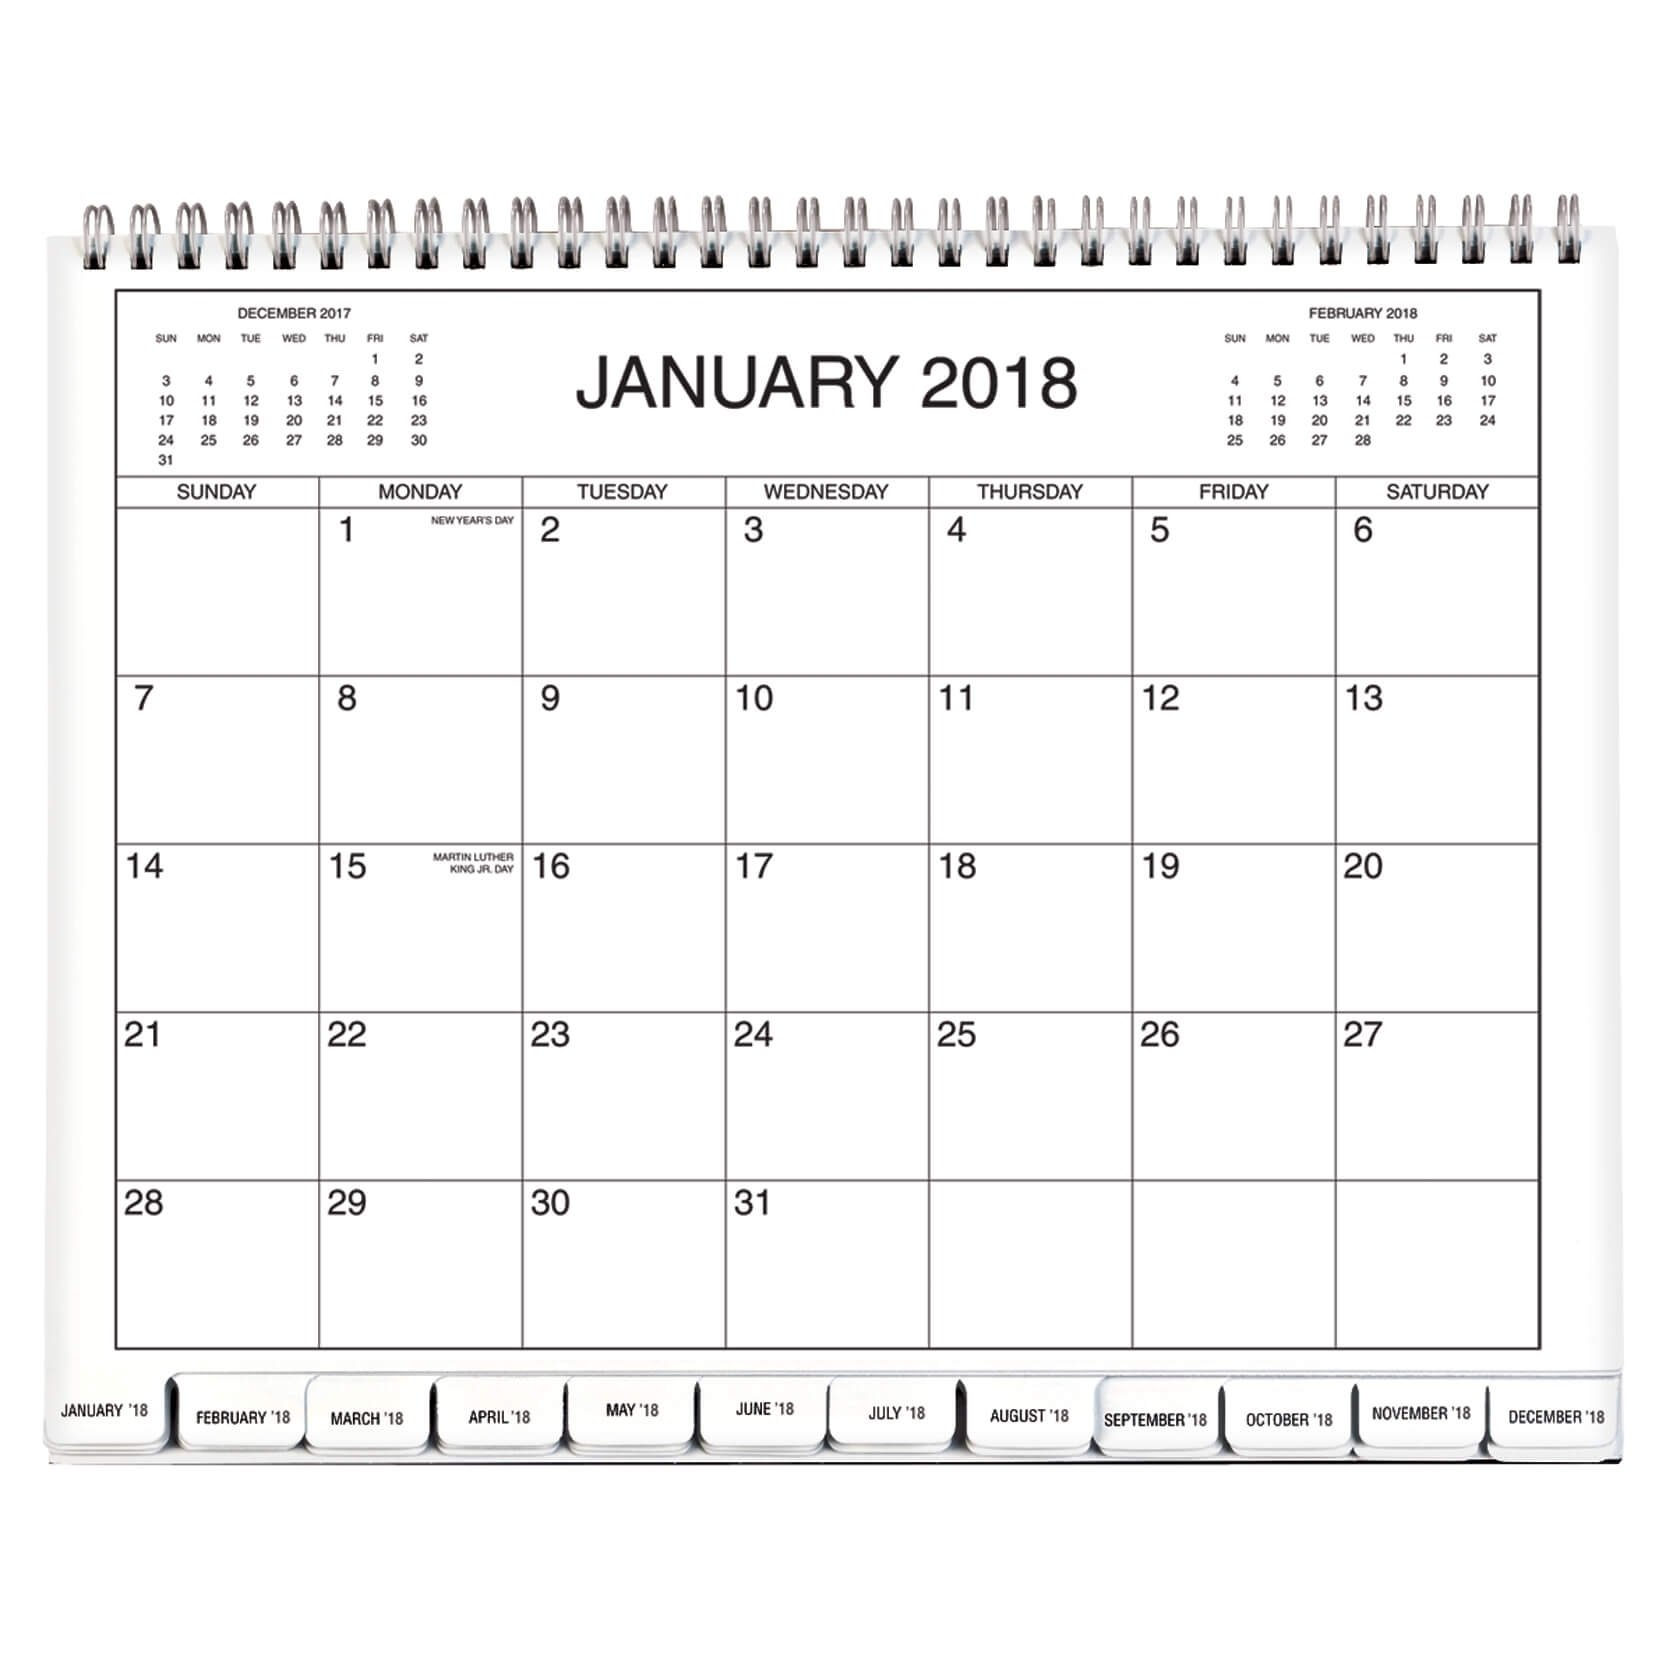 5 Year Calendar 2018-2019-2020-2021-2022 - Monthly Calendar - Walter Calendar 2019 For Sale